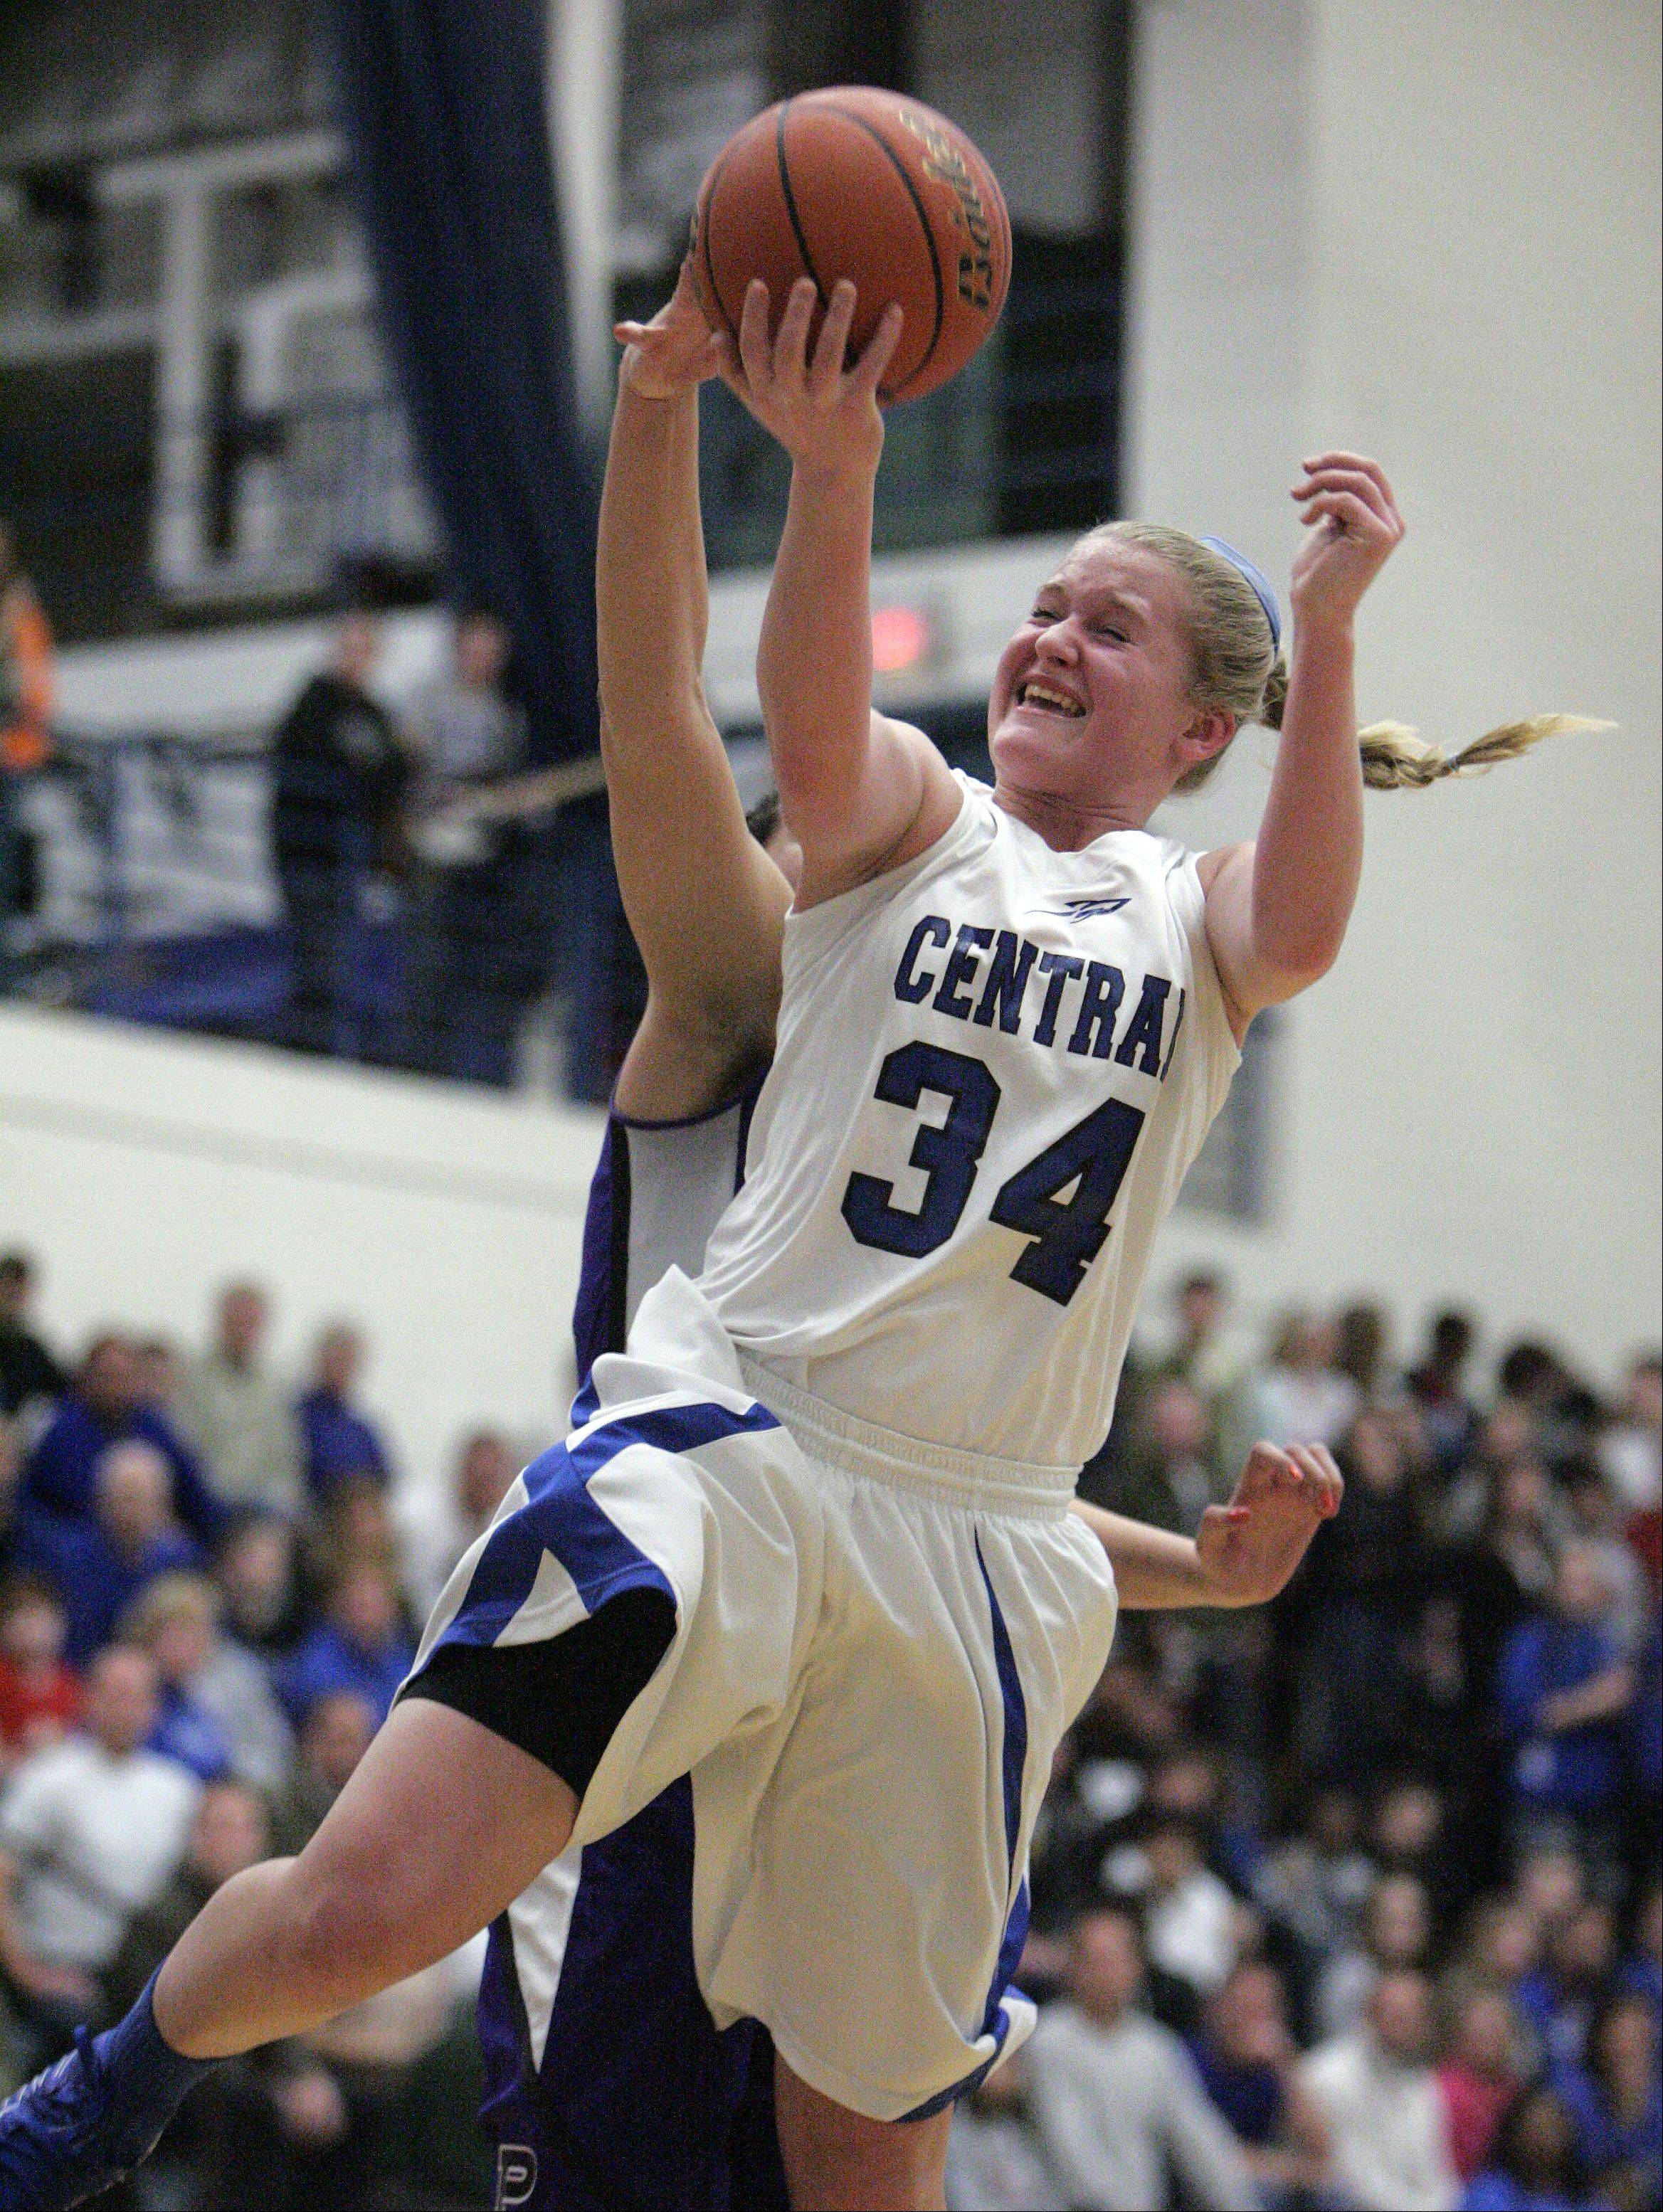 Burlington Central's Samantha Pryor (34) goes hard to the hoop during the second quarter of Burlington Central vs Plano for the IHSA Class 3A regional girls basketball championship Friday February 15, 2013 at Burlington. Central won the game 38-34, which was their first regional title win since 1990.